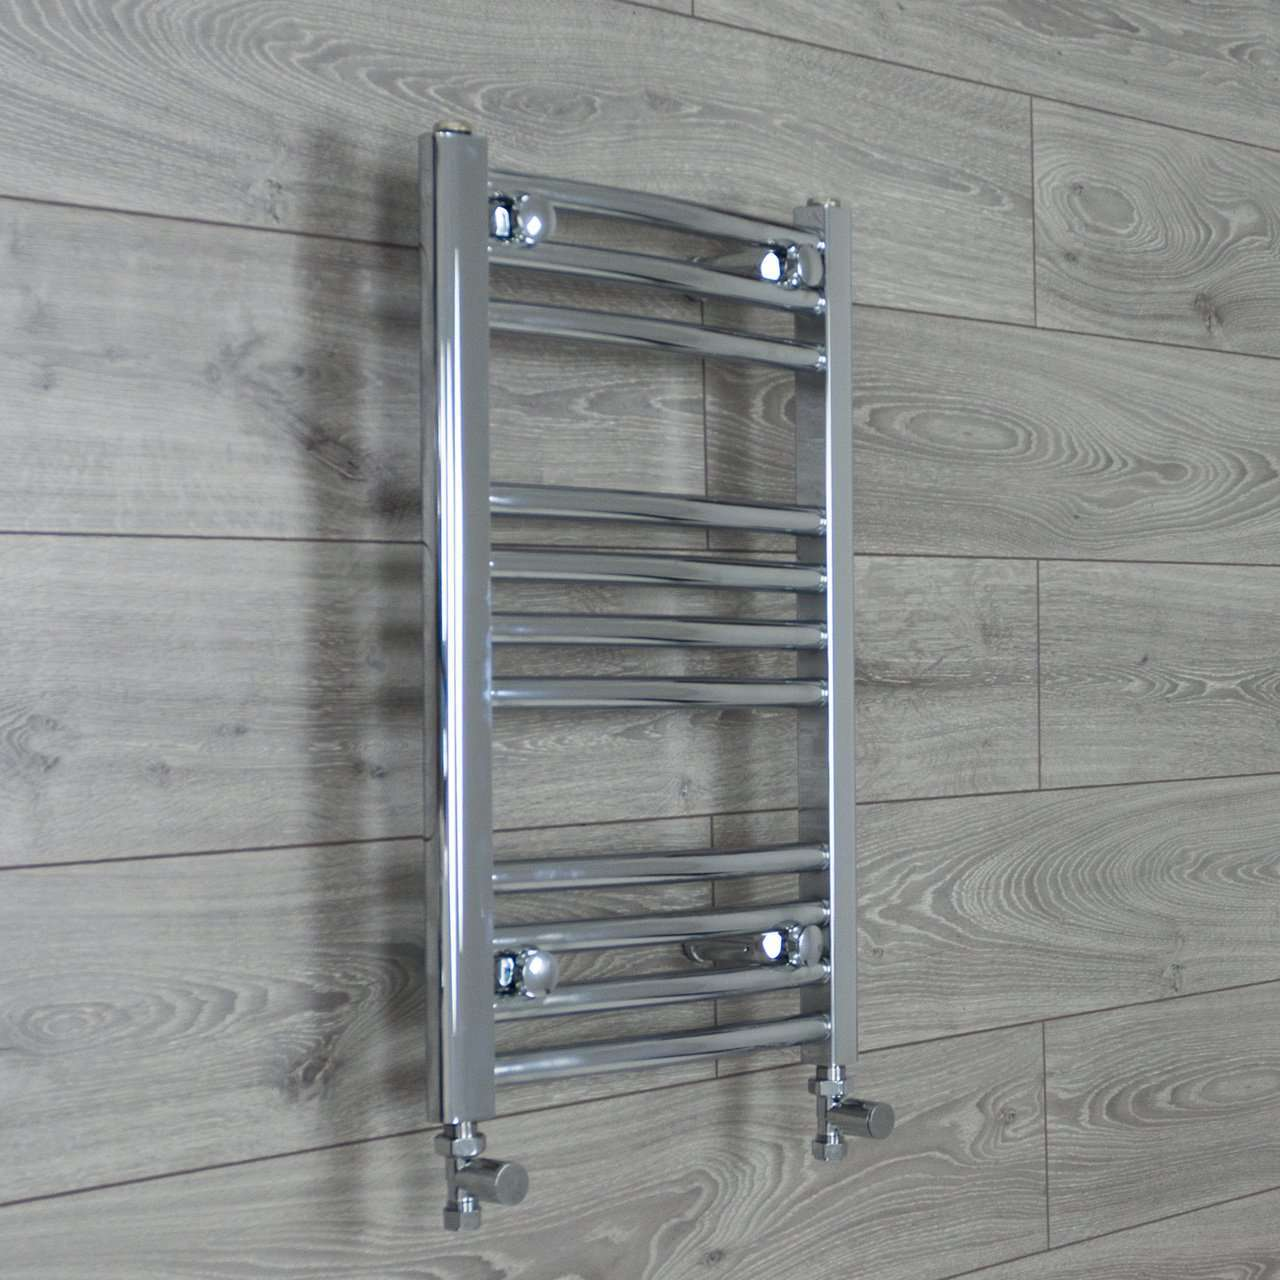 400mm Wide 600mm High Curved Chrome Heated Towel Rail Radiator HTR,With Straight Valve